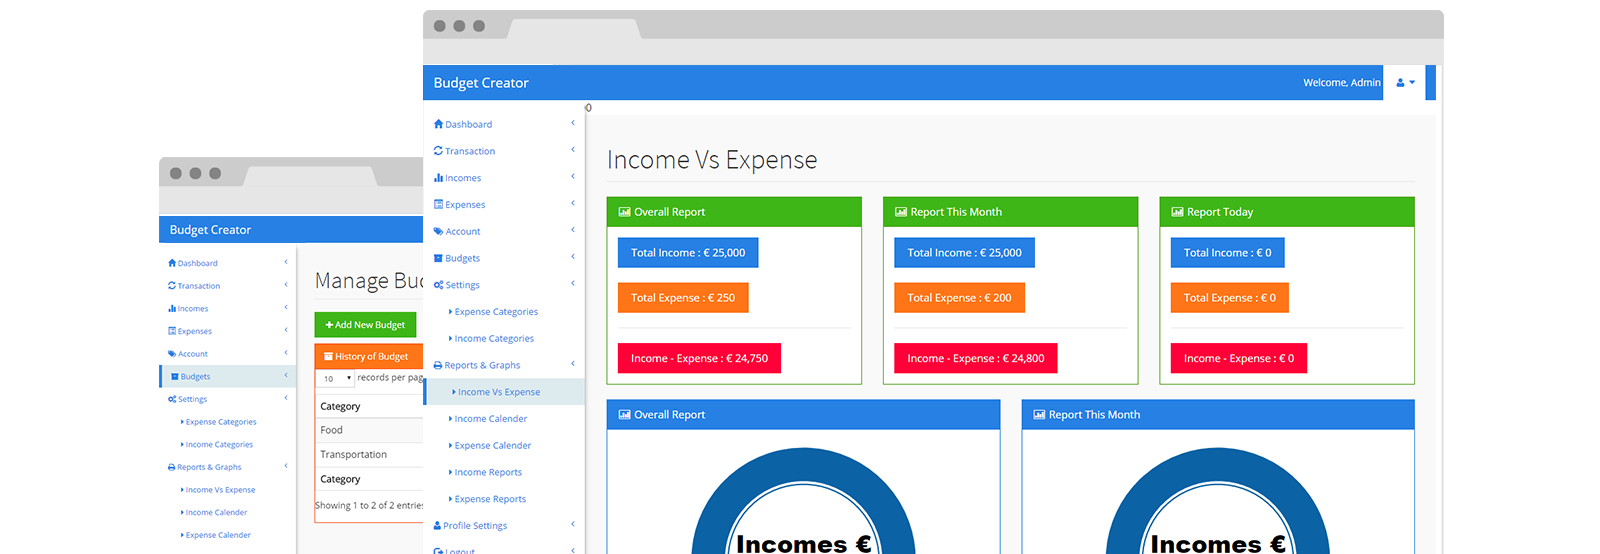 features budget creator